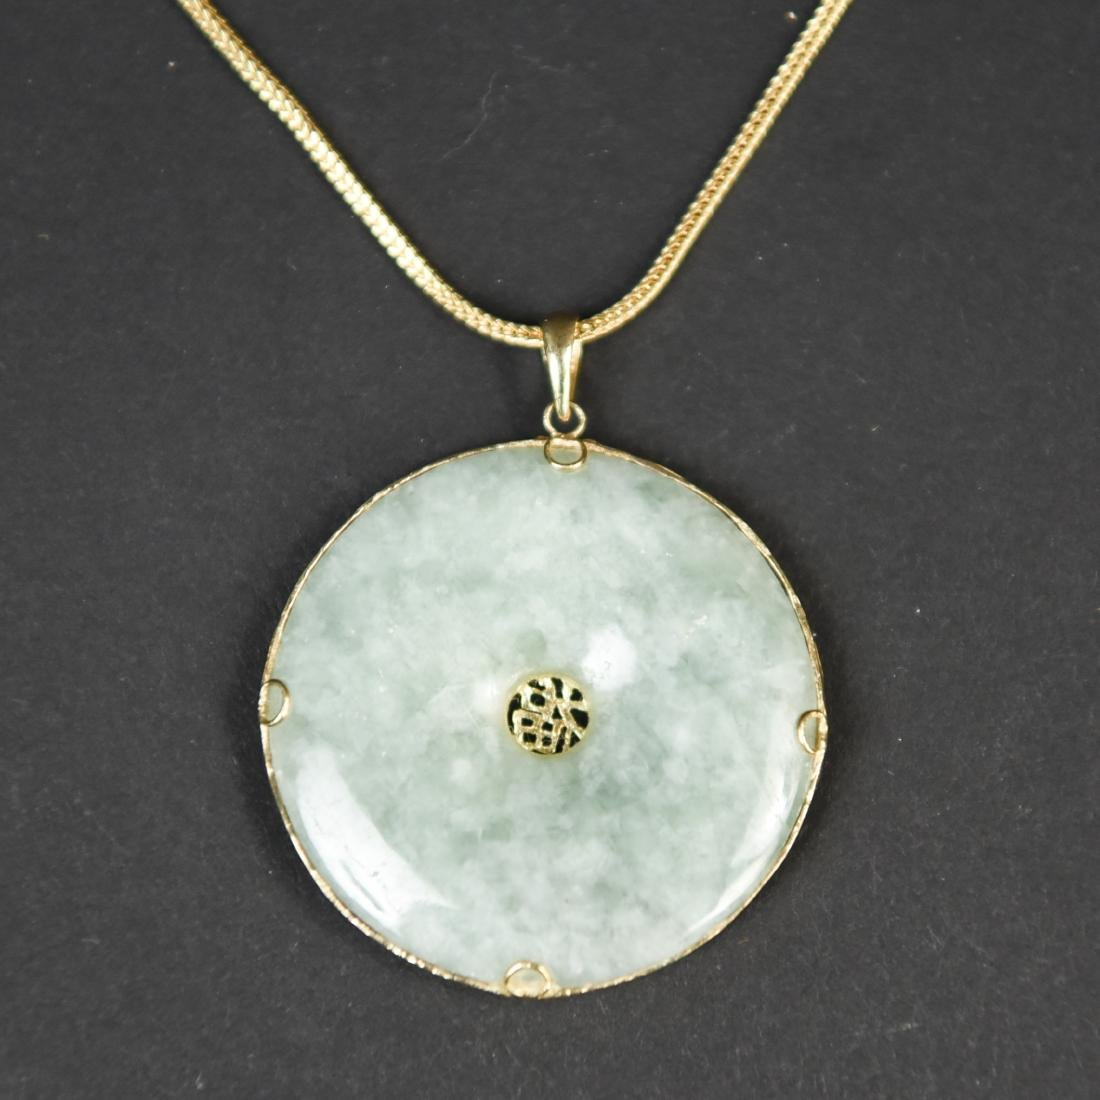 CHINESE JADE AND GOLD BI-DISC NECKLACE - 3